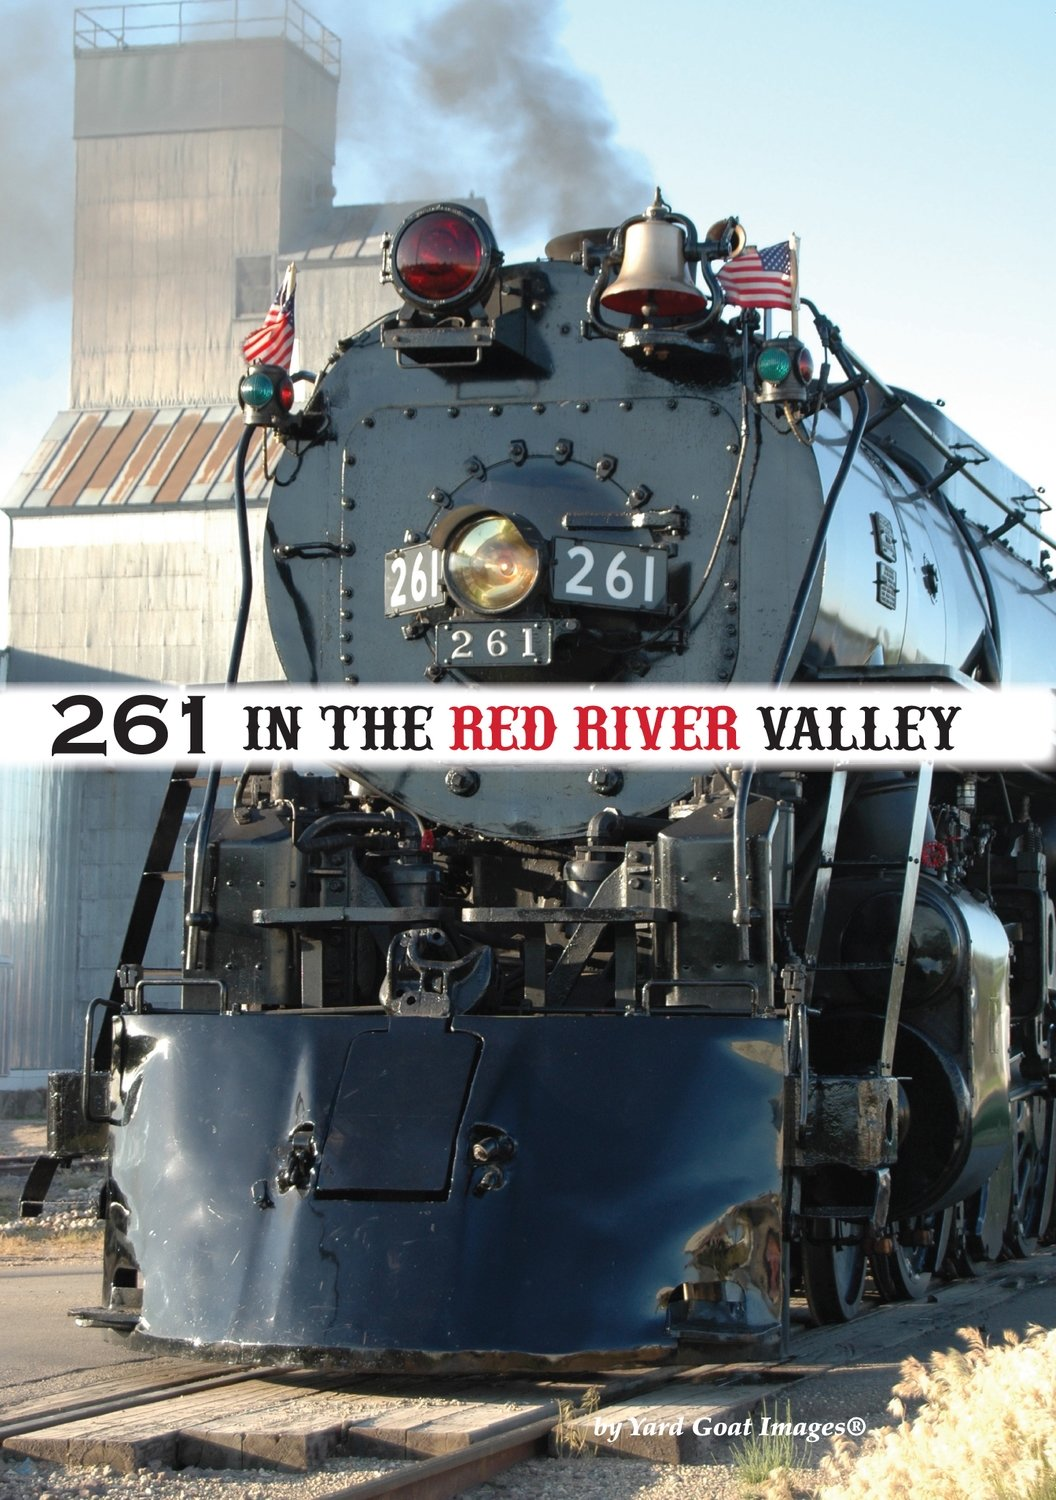 261 In The Red River Valley